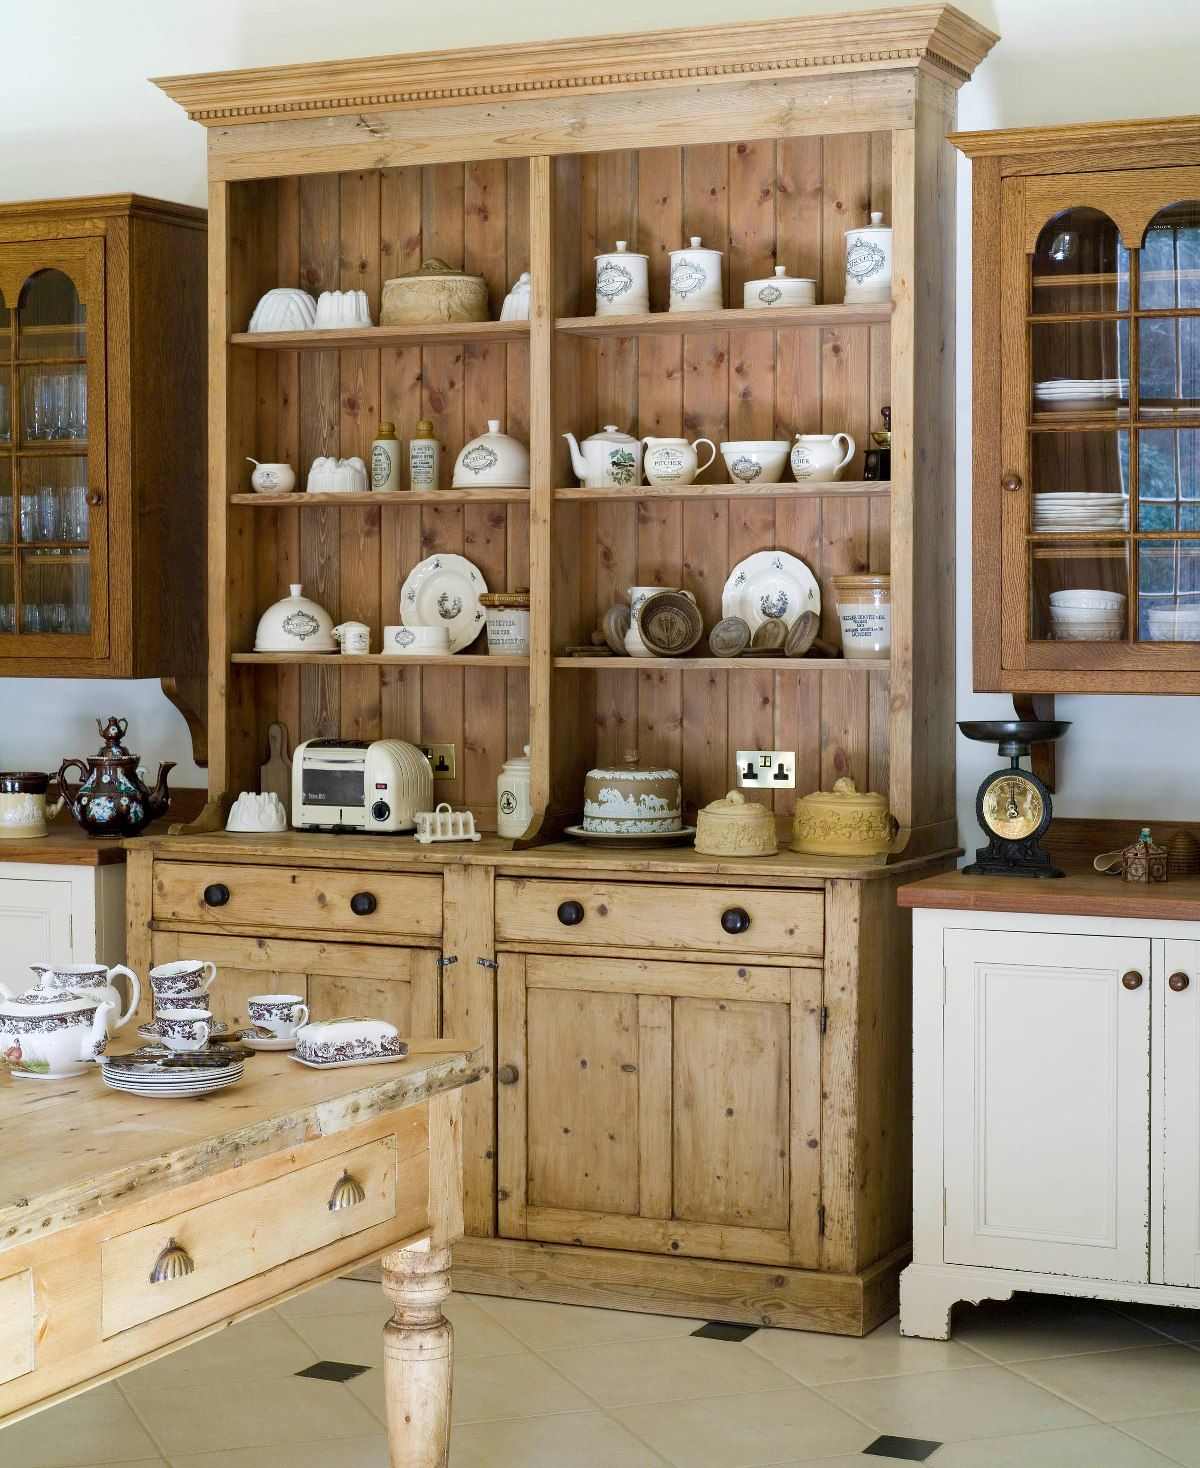 Natural Pine Kitchen Cabinets: Natural Pine Cupboard In The Kitchen